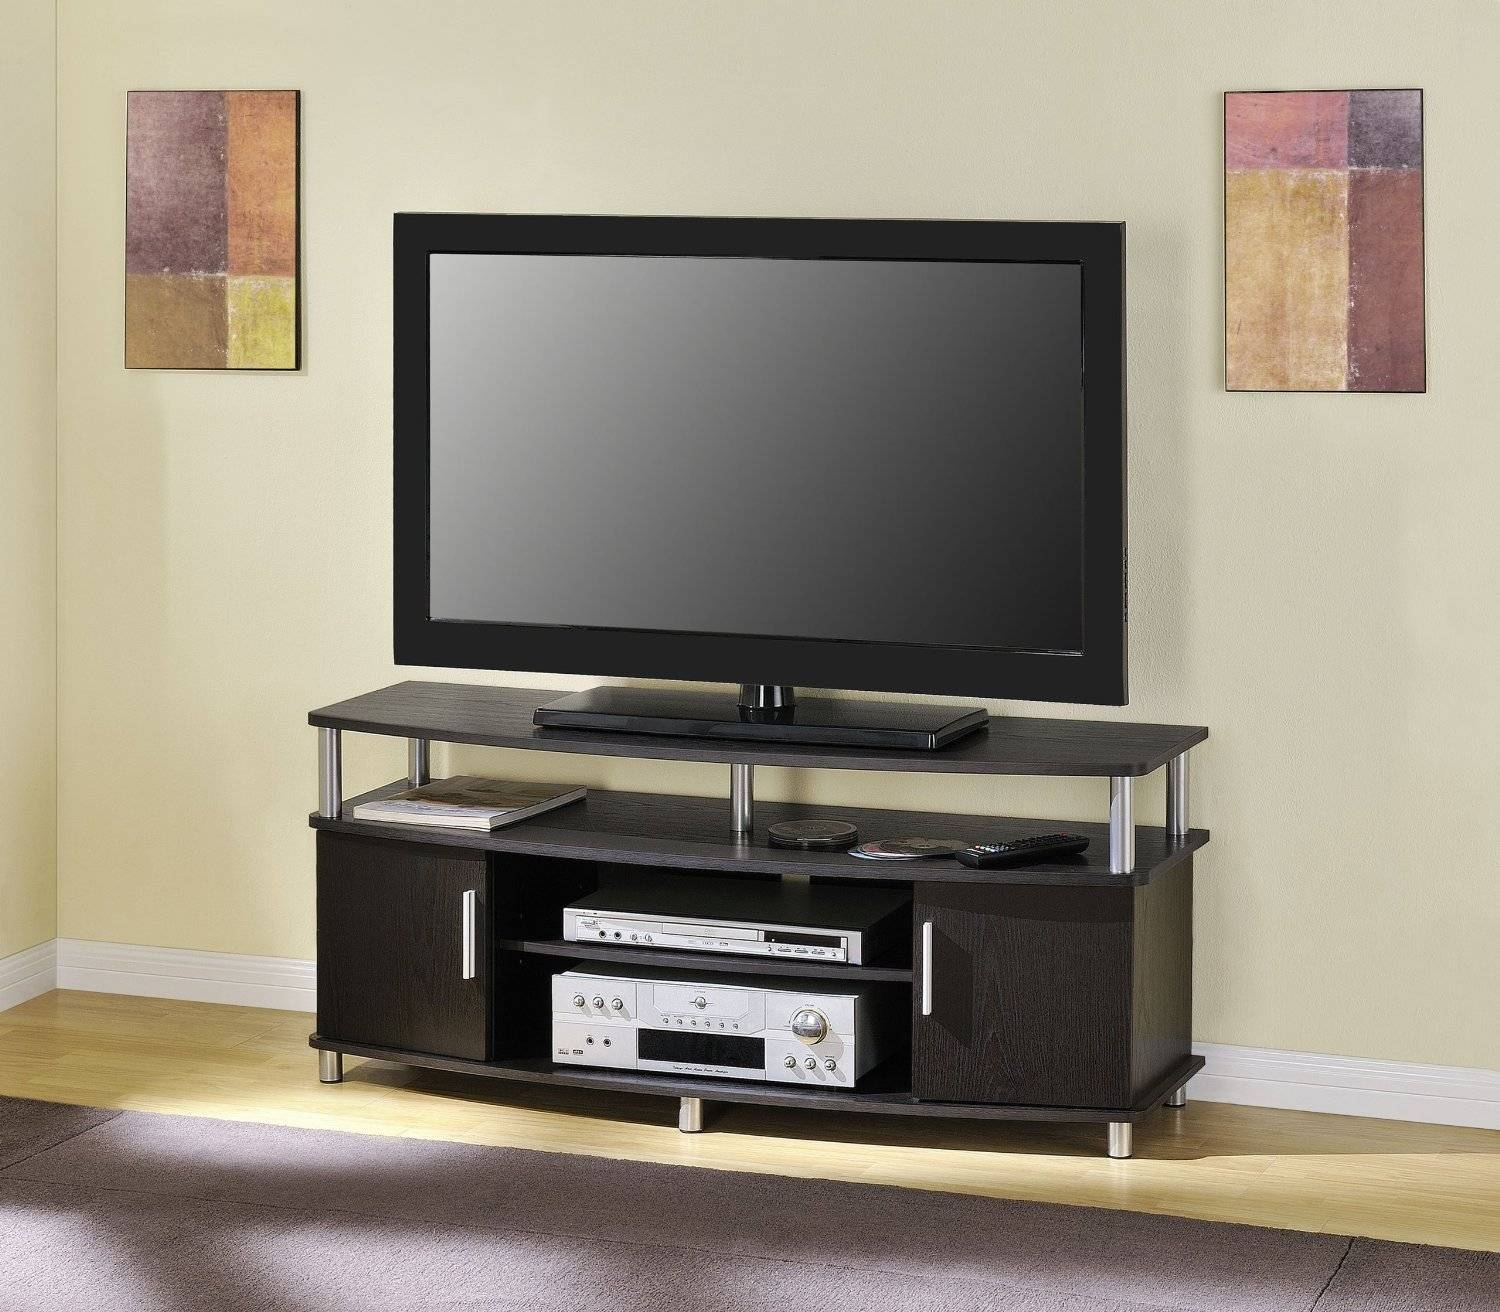 Tv Stands: 7 Best Selling Flat Screen Tv Stands 2017 throughout 24 Inch Wide Tv Stands (Image 15 of 15)